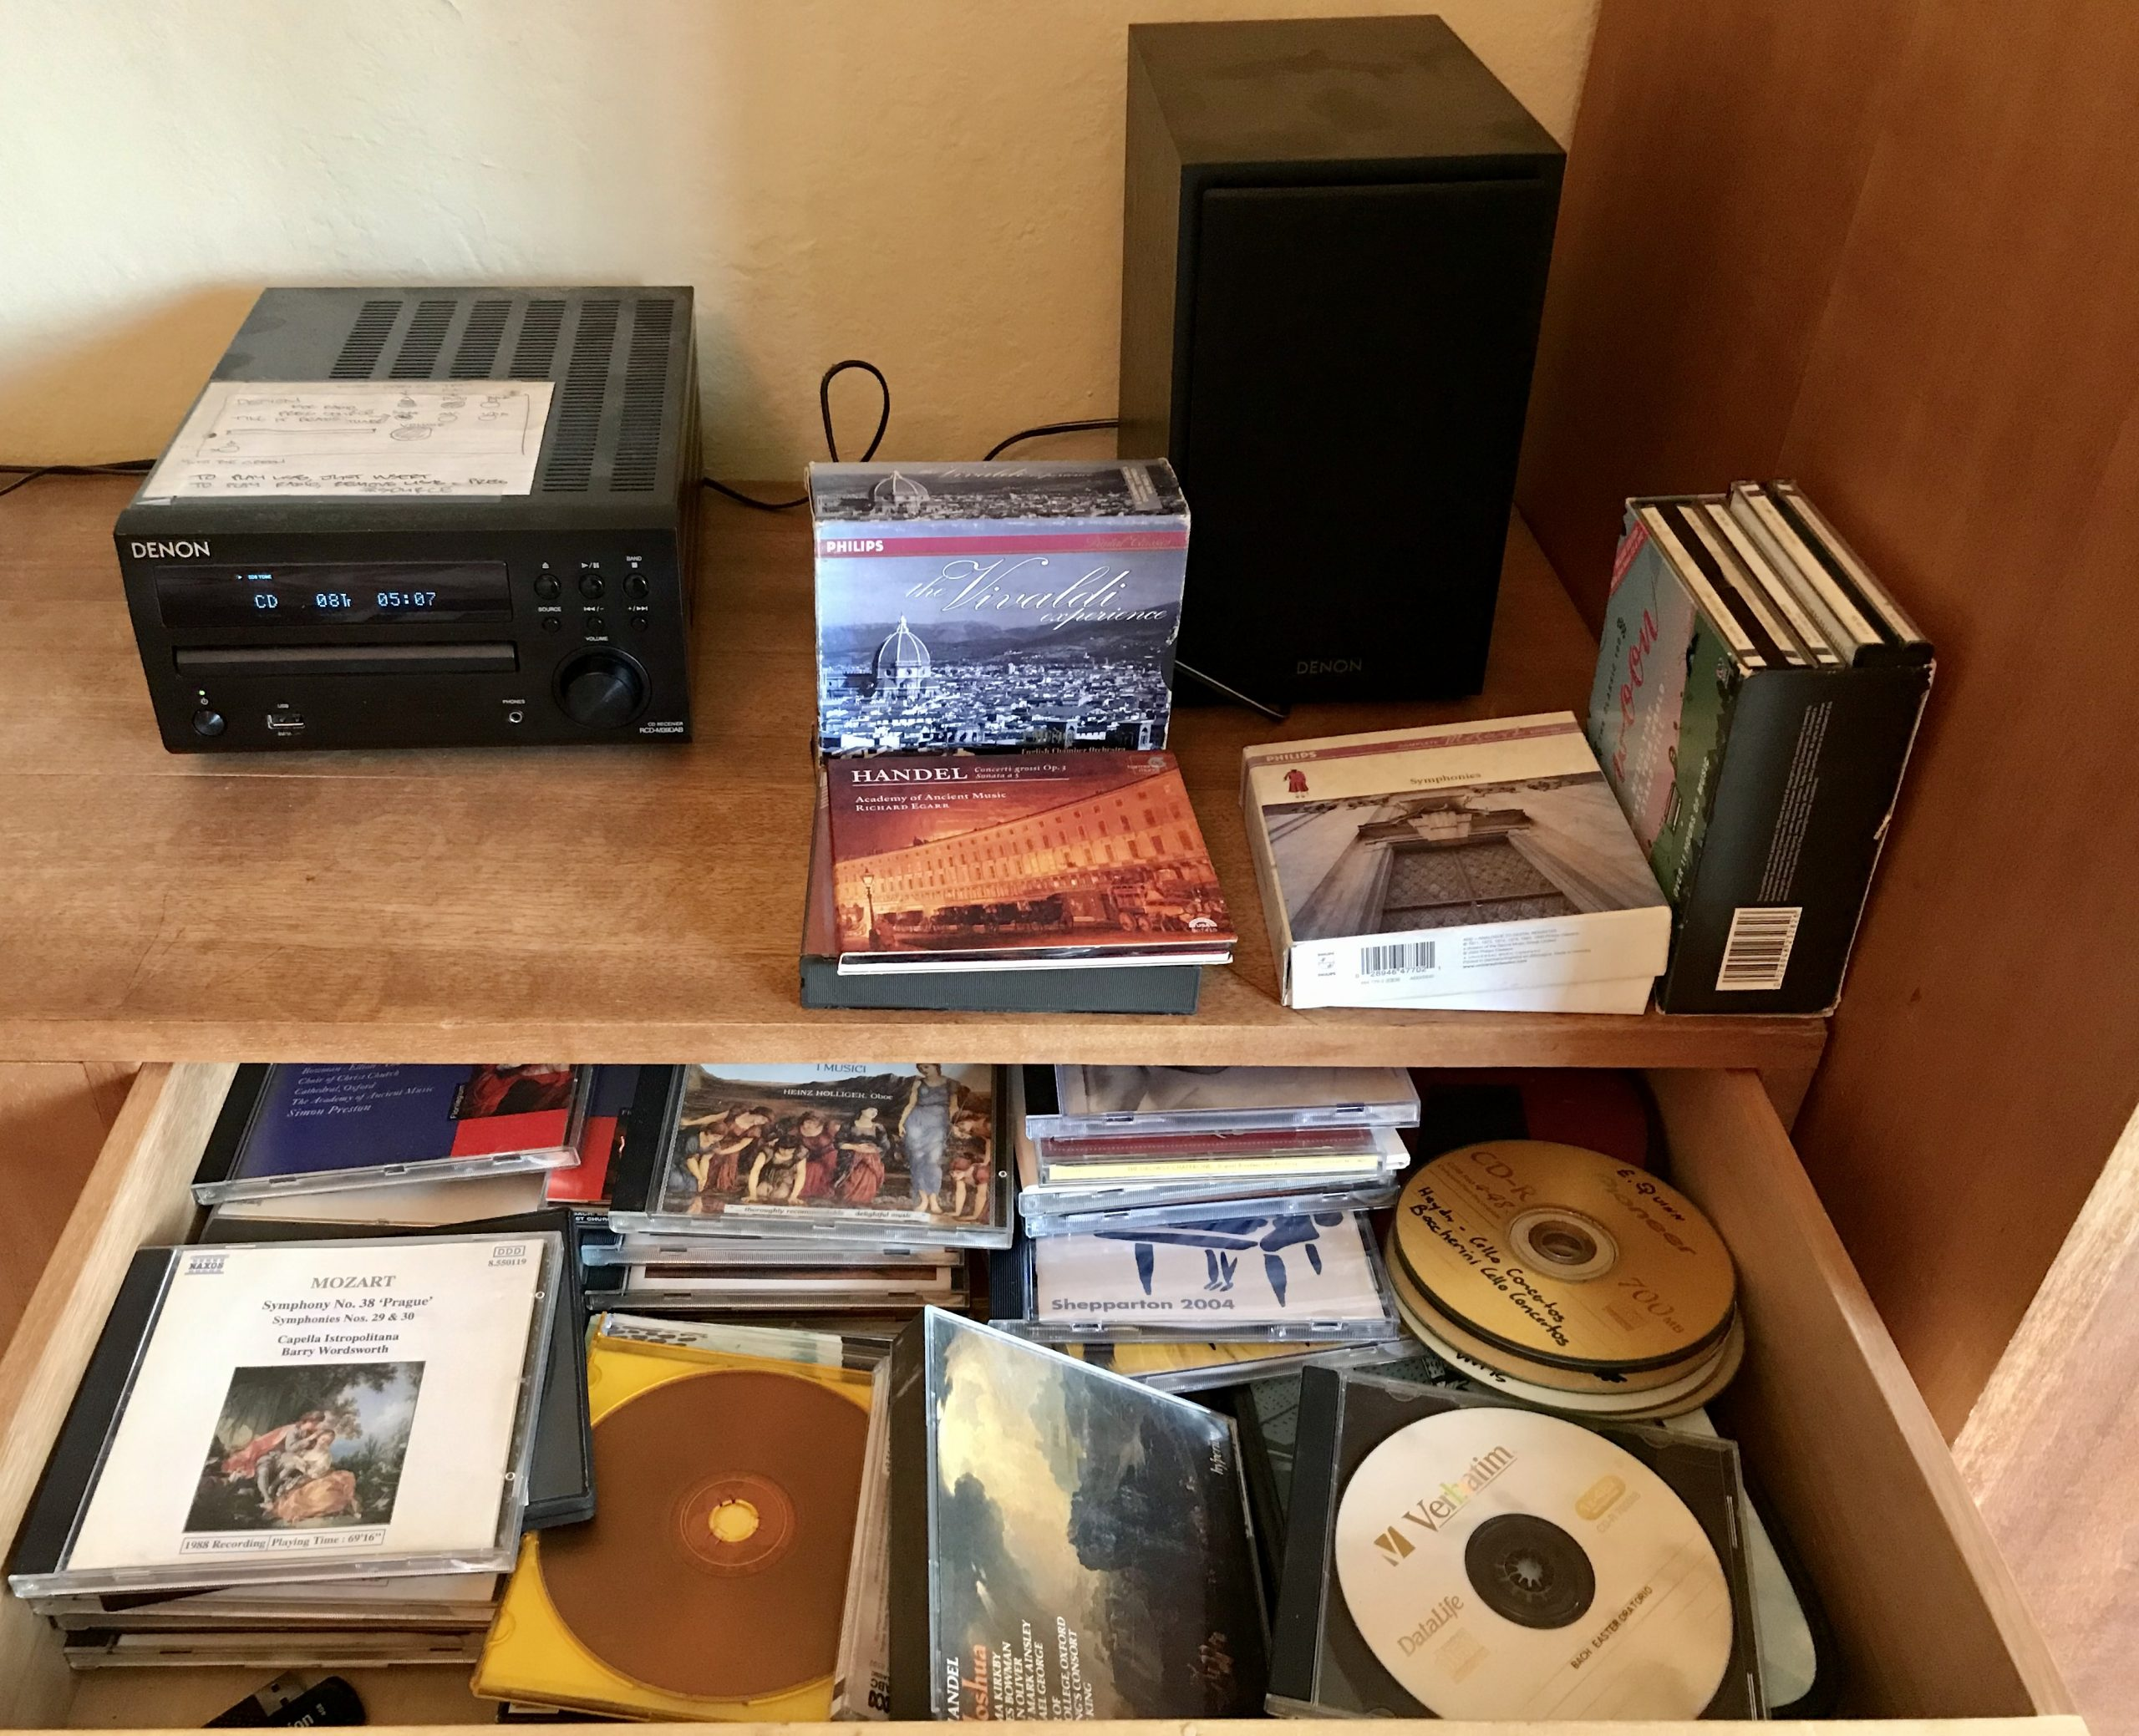 A drawer full of Cds, a CD player and speaker on the bench above it.